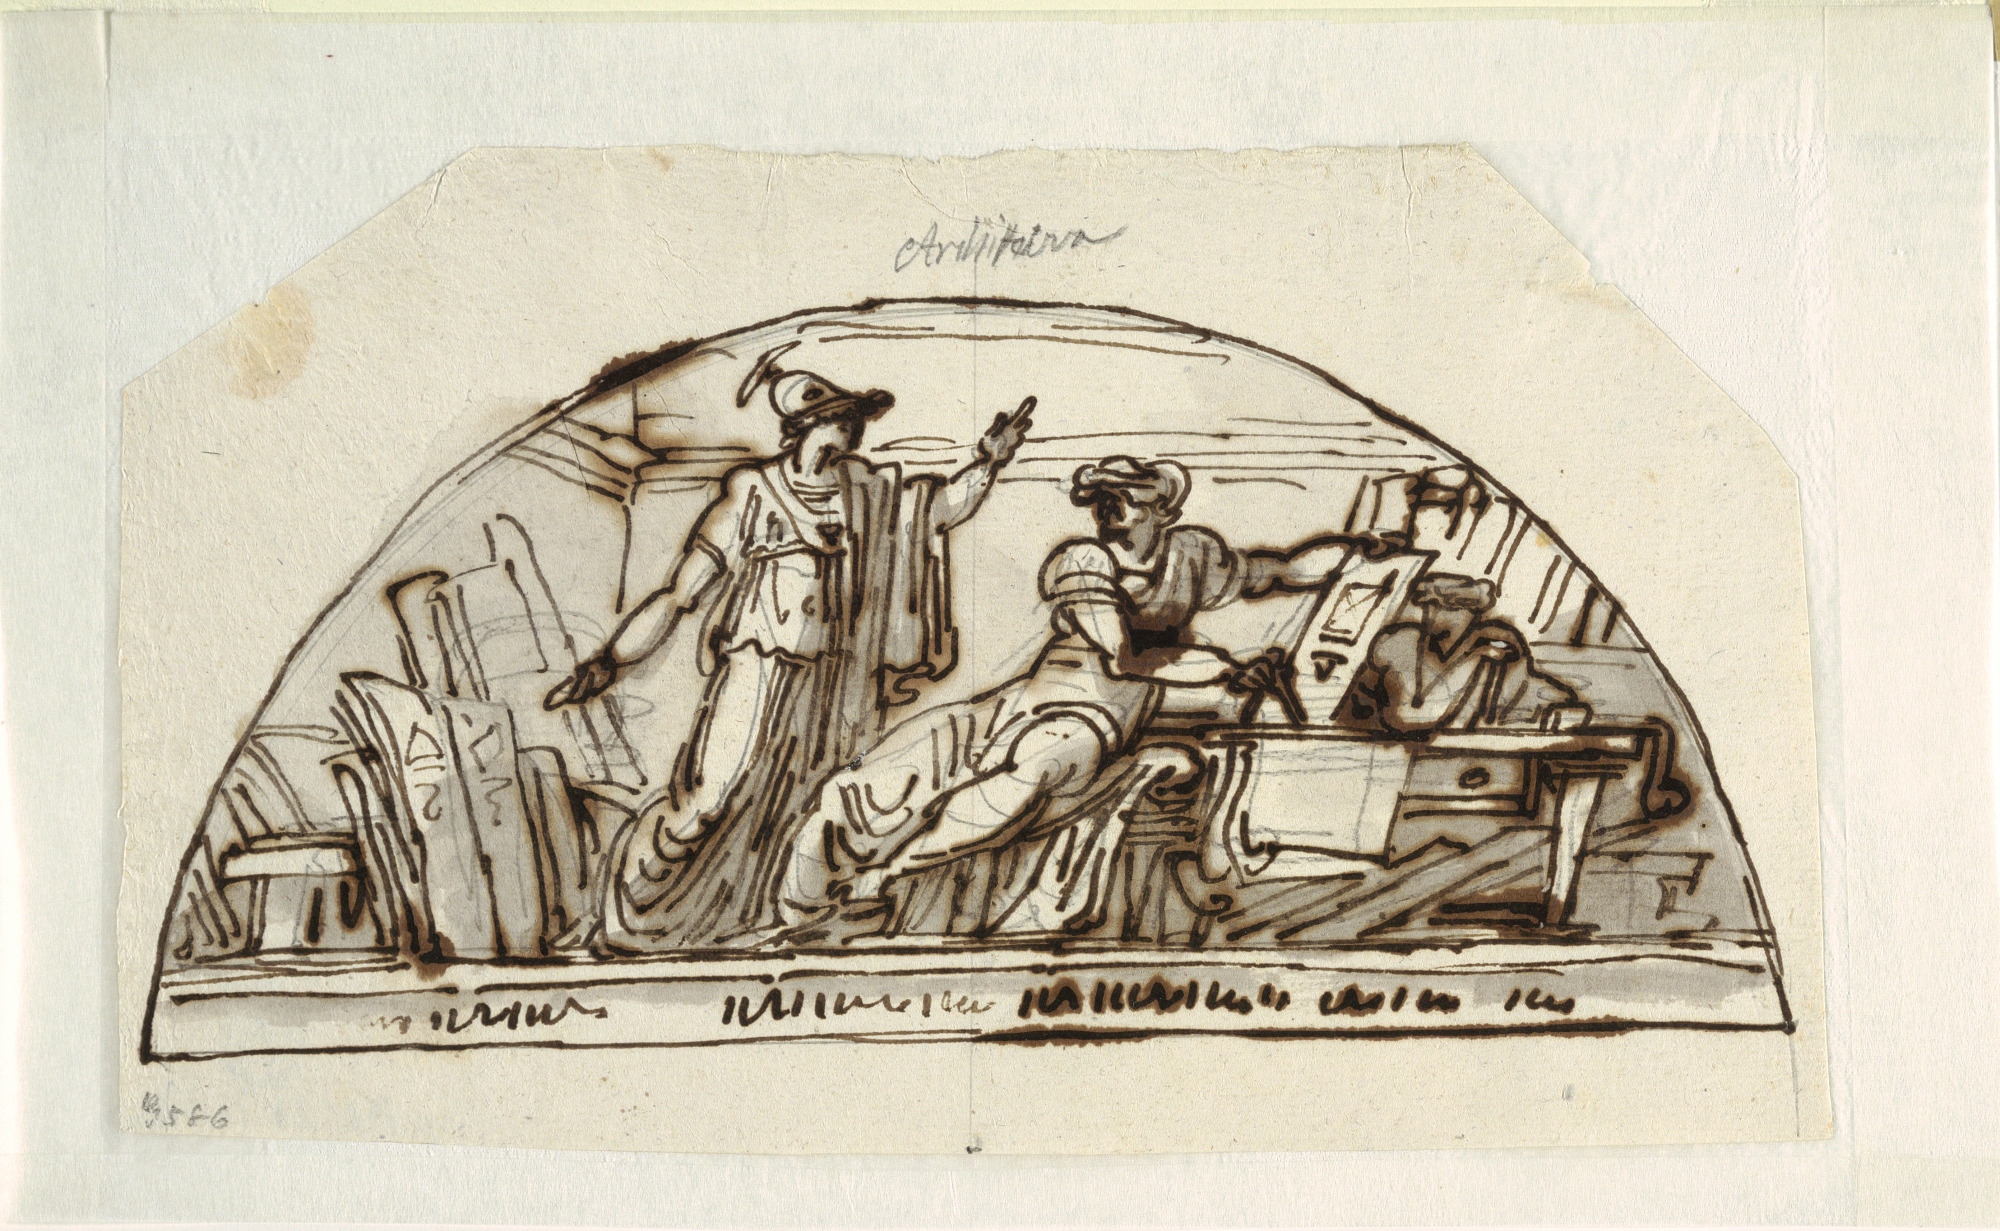 Lunette with Allegory of Architecture